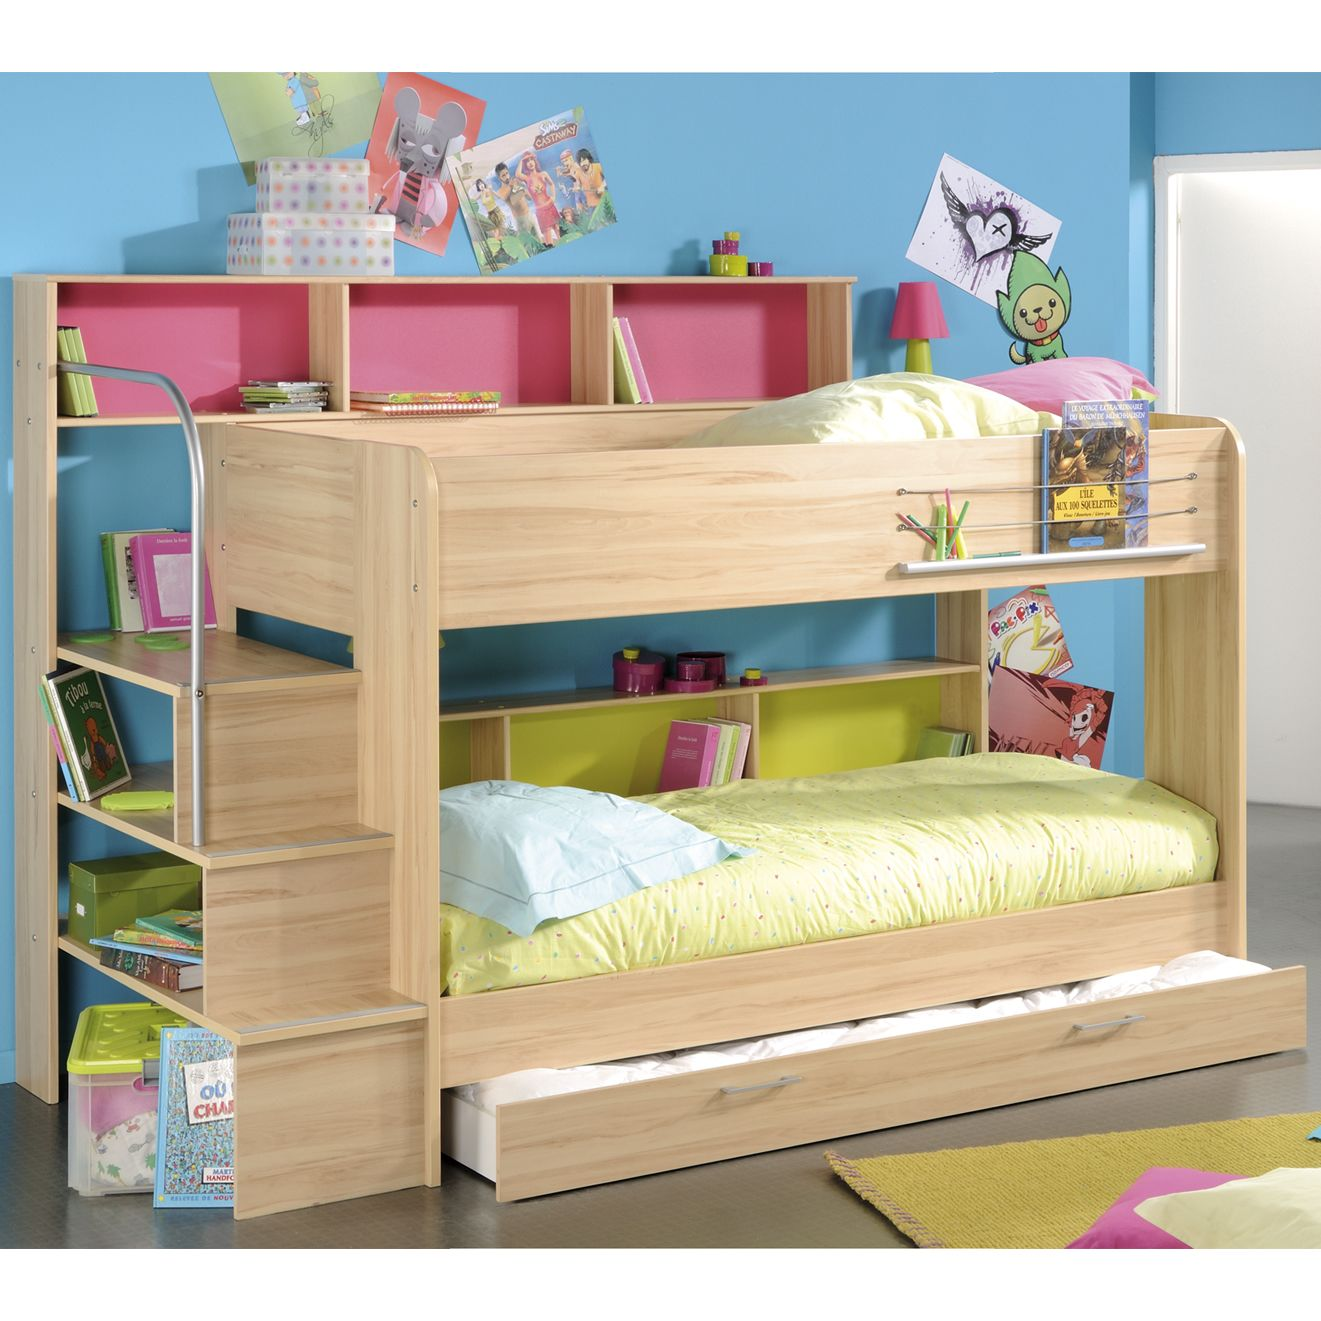 Best Space Function And Fun Bunk Beds Vs Twin Beds Kids 640 x 480